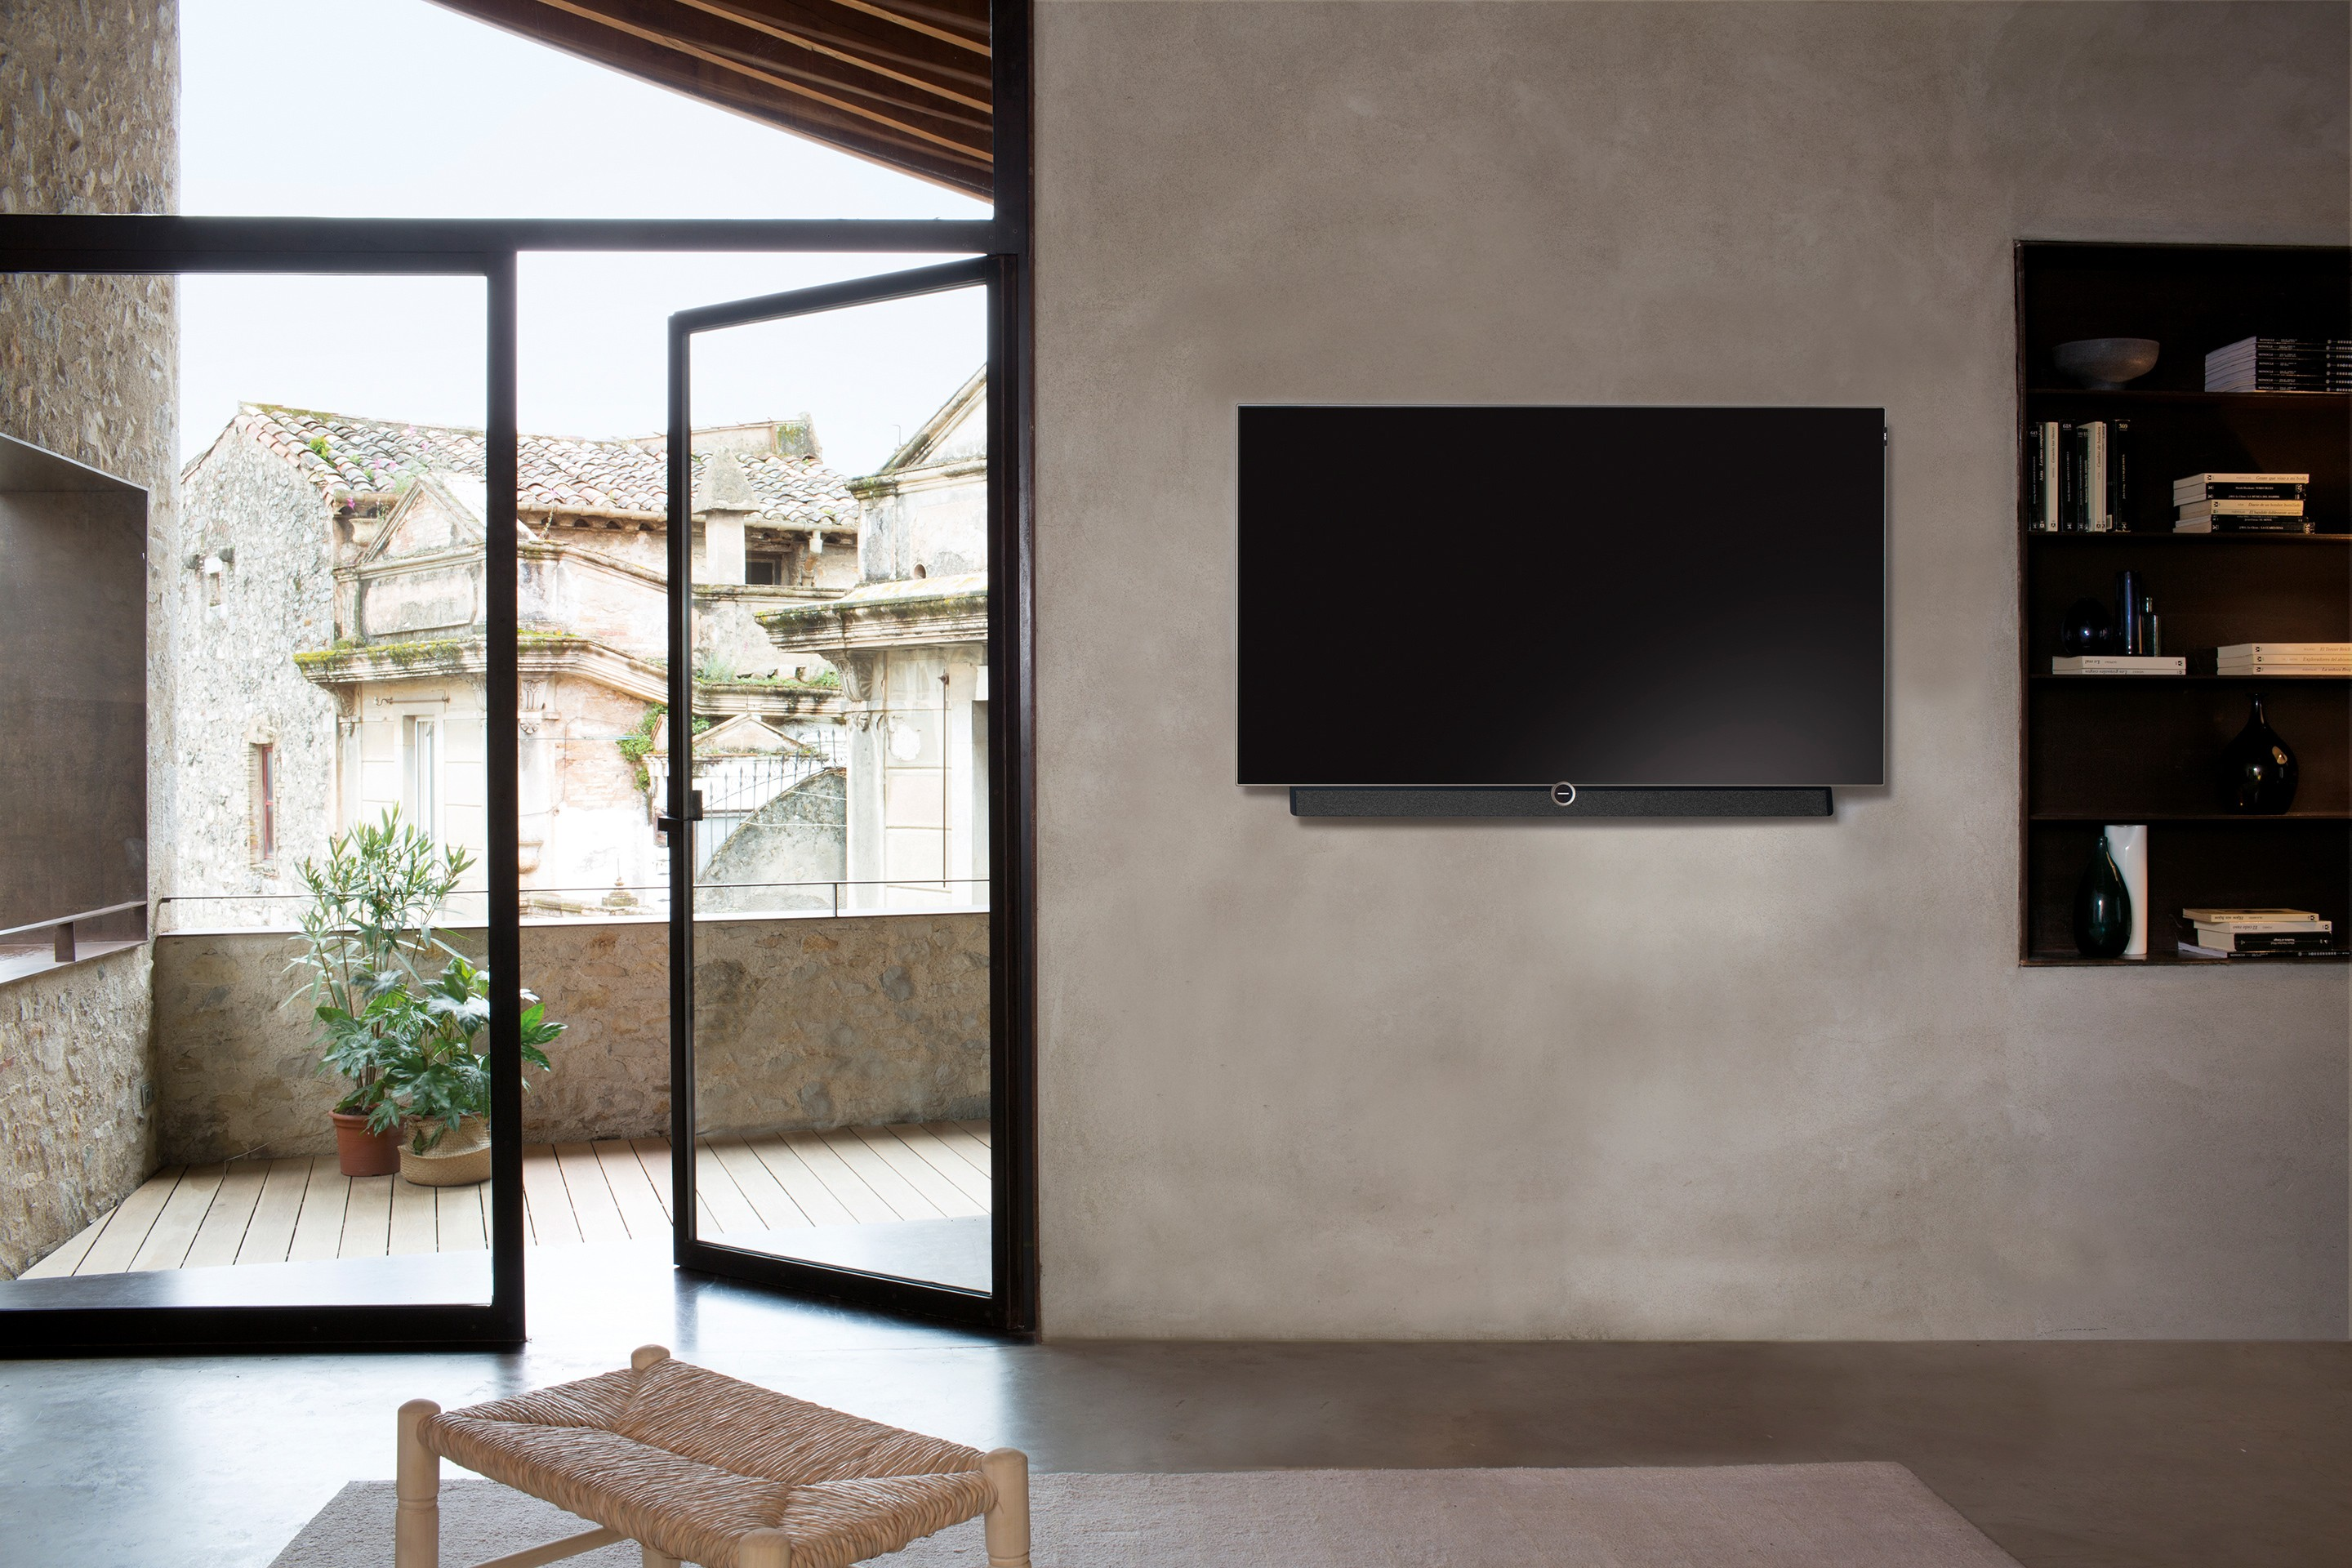 Loewe bild 5 OLED Television Wall-mounted Product Design and Art Direction Bodo Sperlein